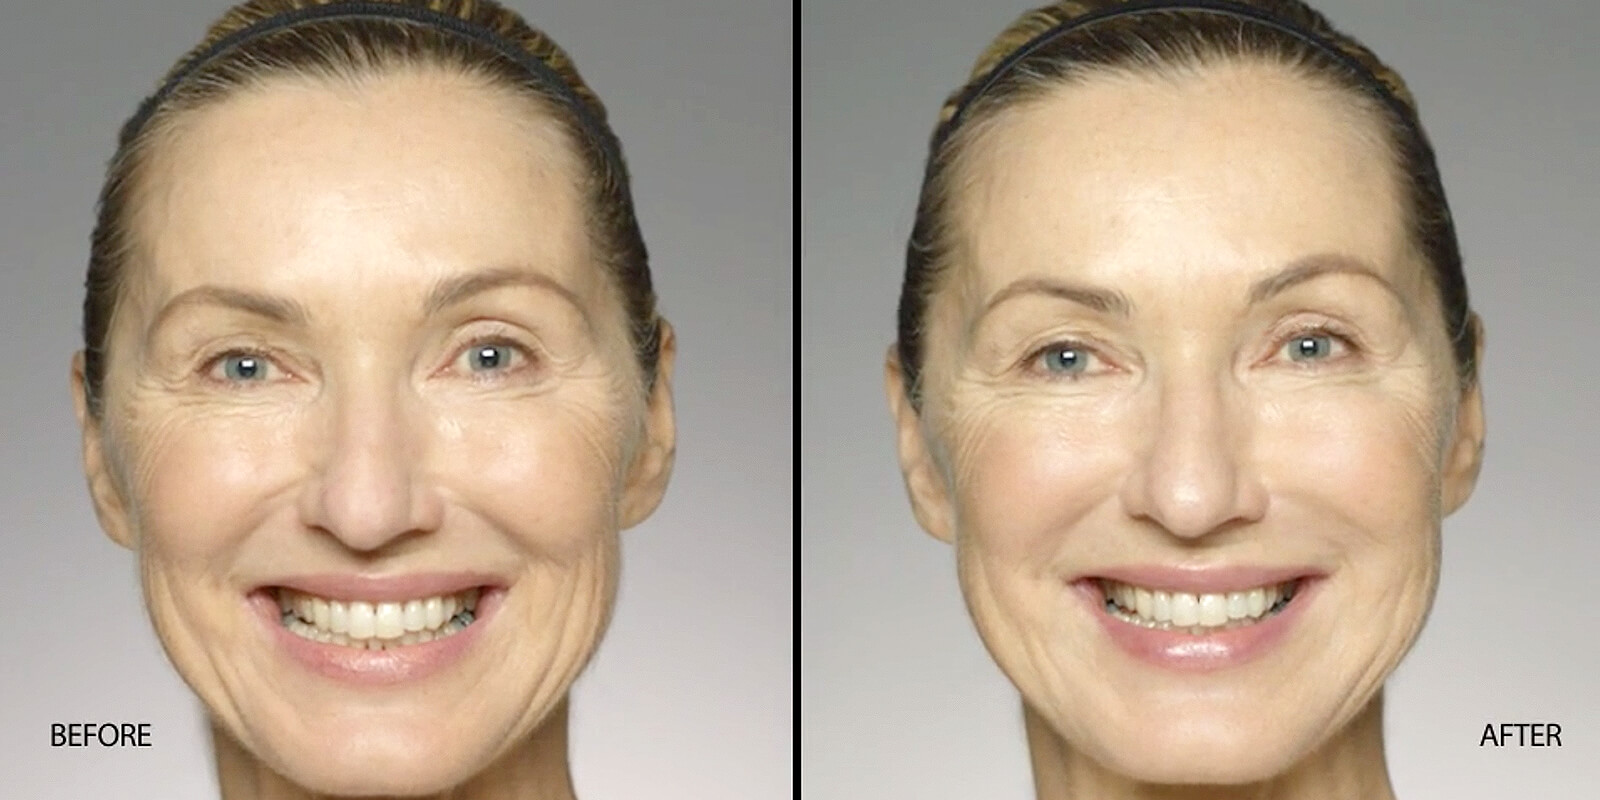 Before & After Restylane Refyne